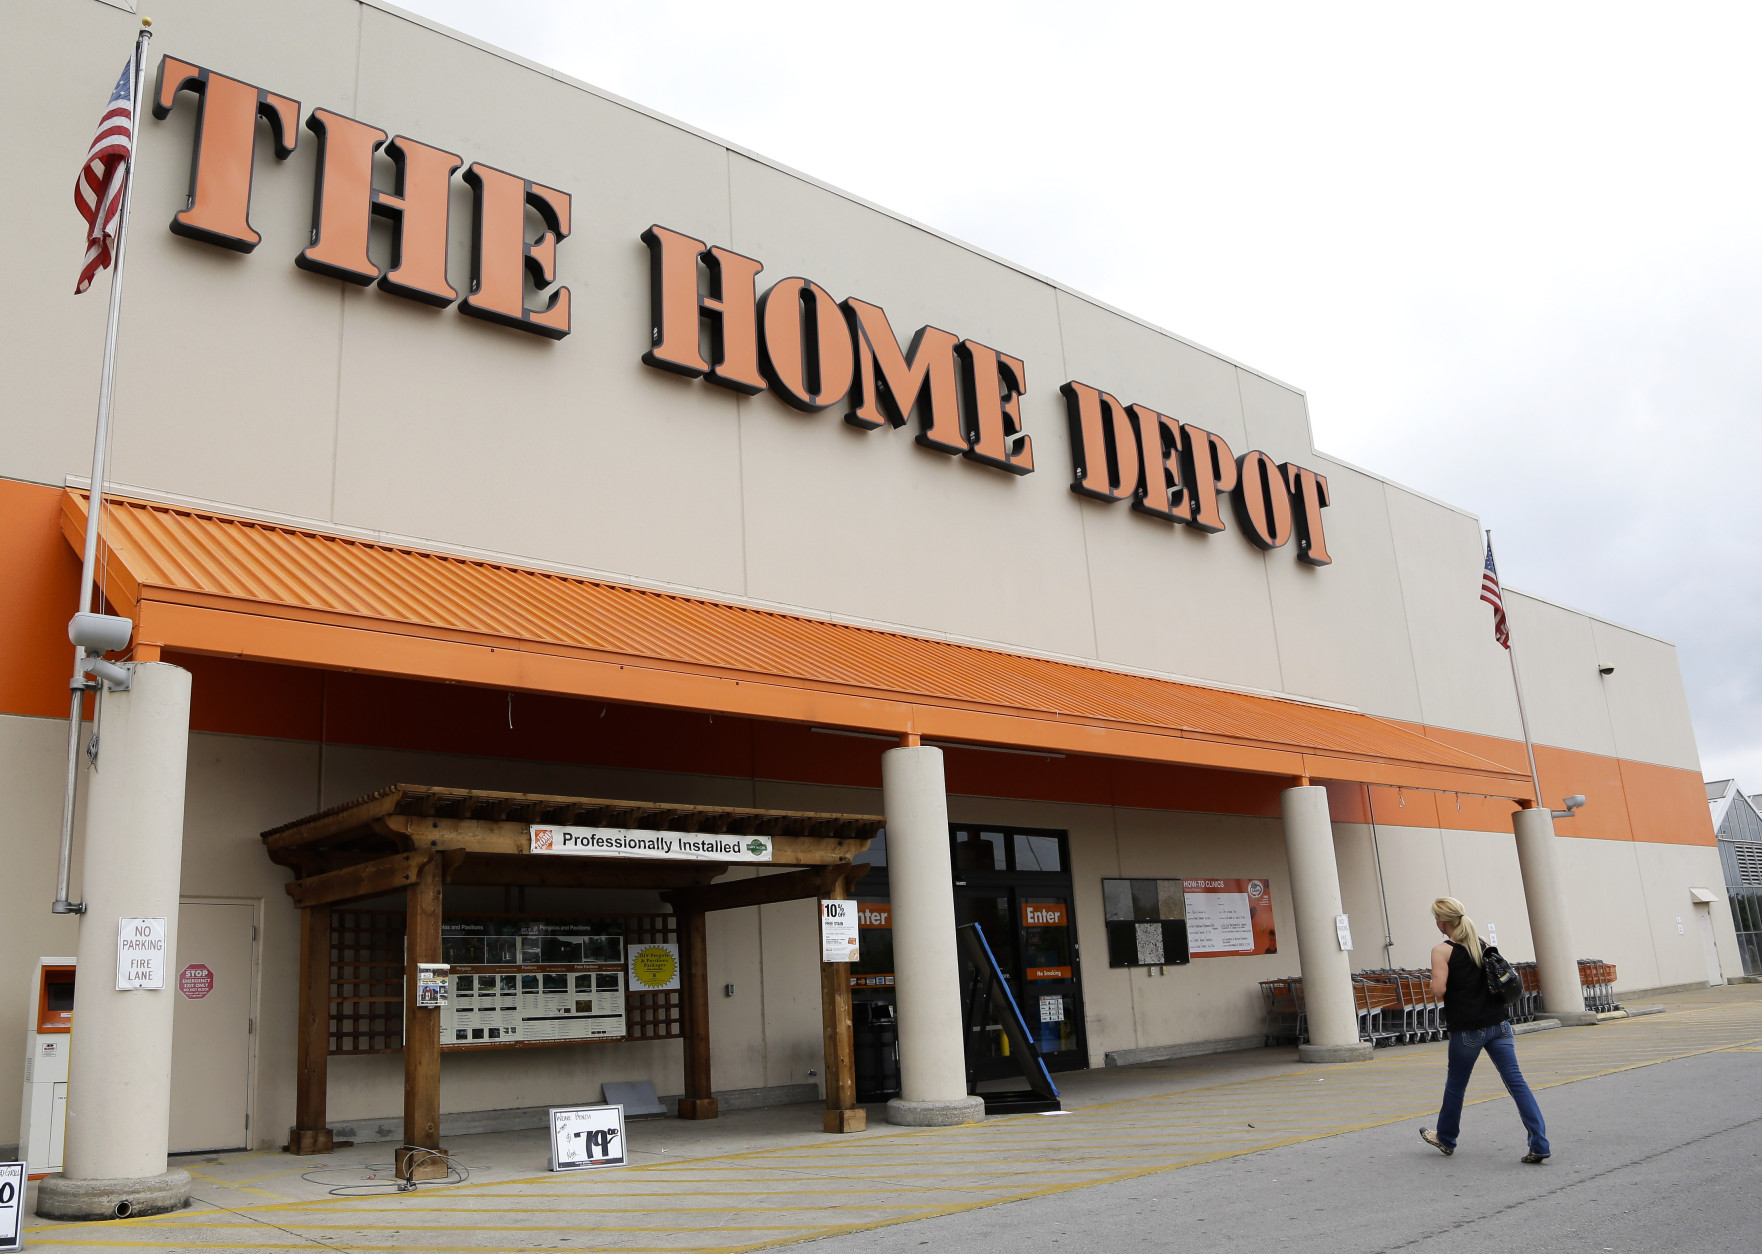 Official website for home depot - The Home Depot Survey The Home Depot Survey 5